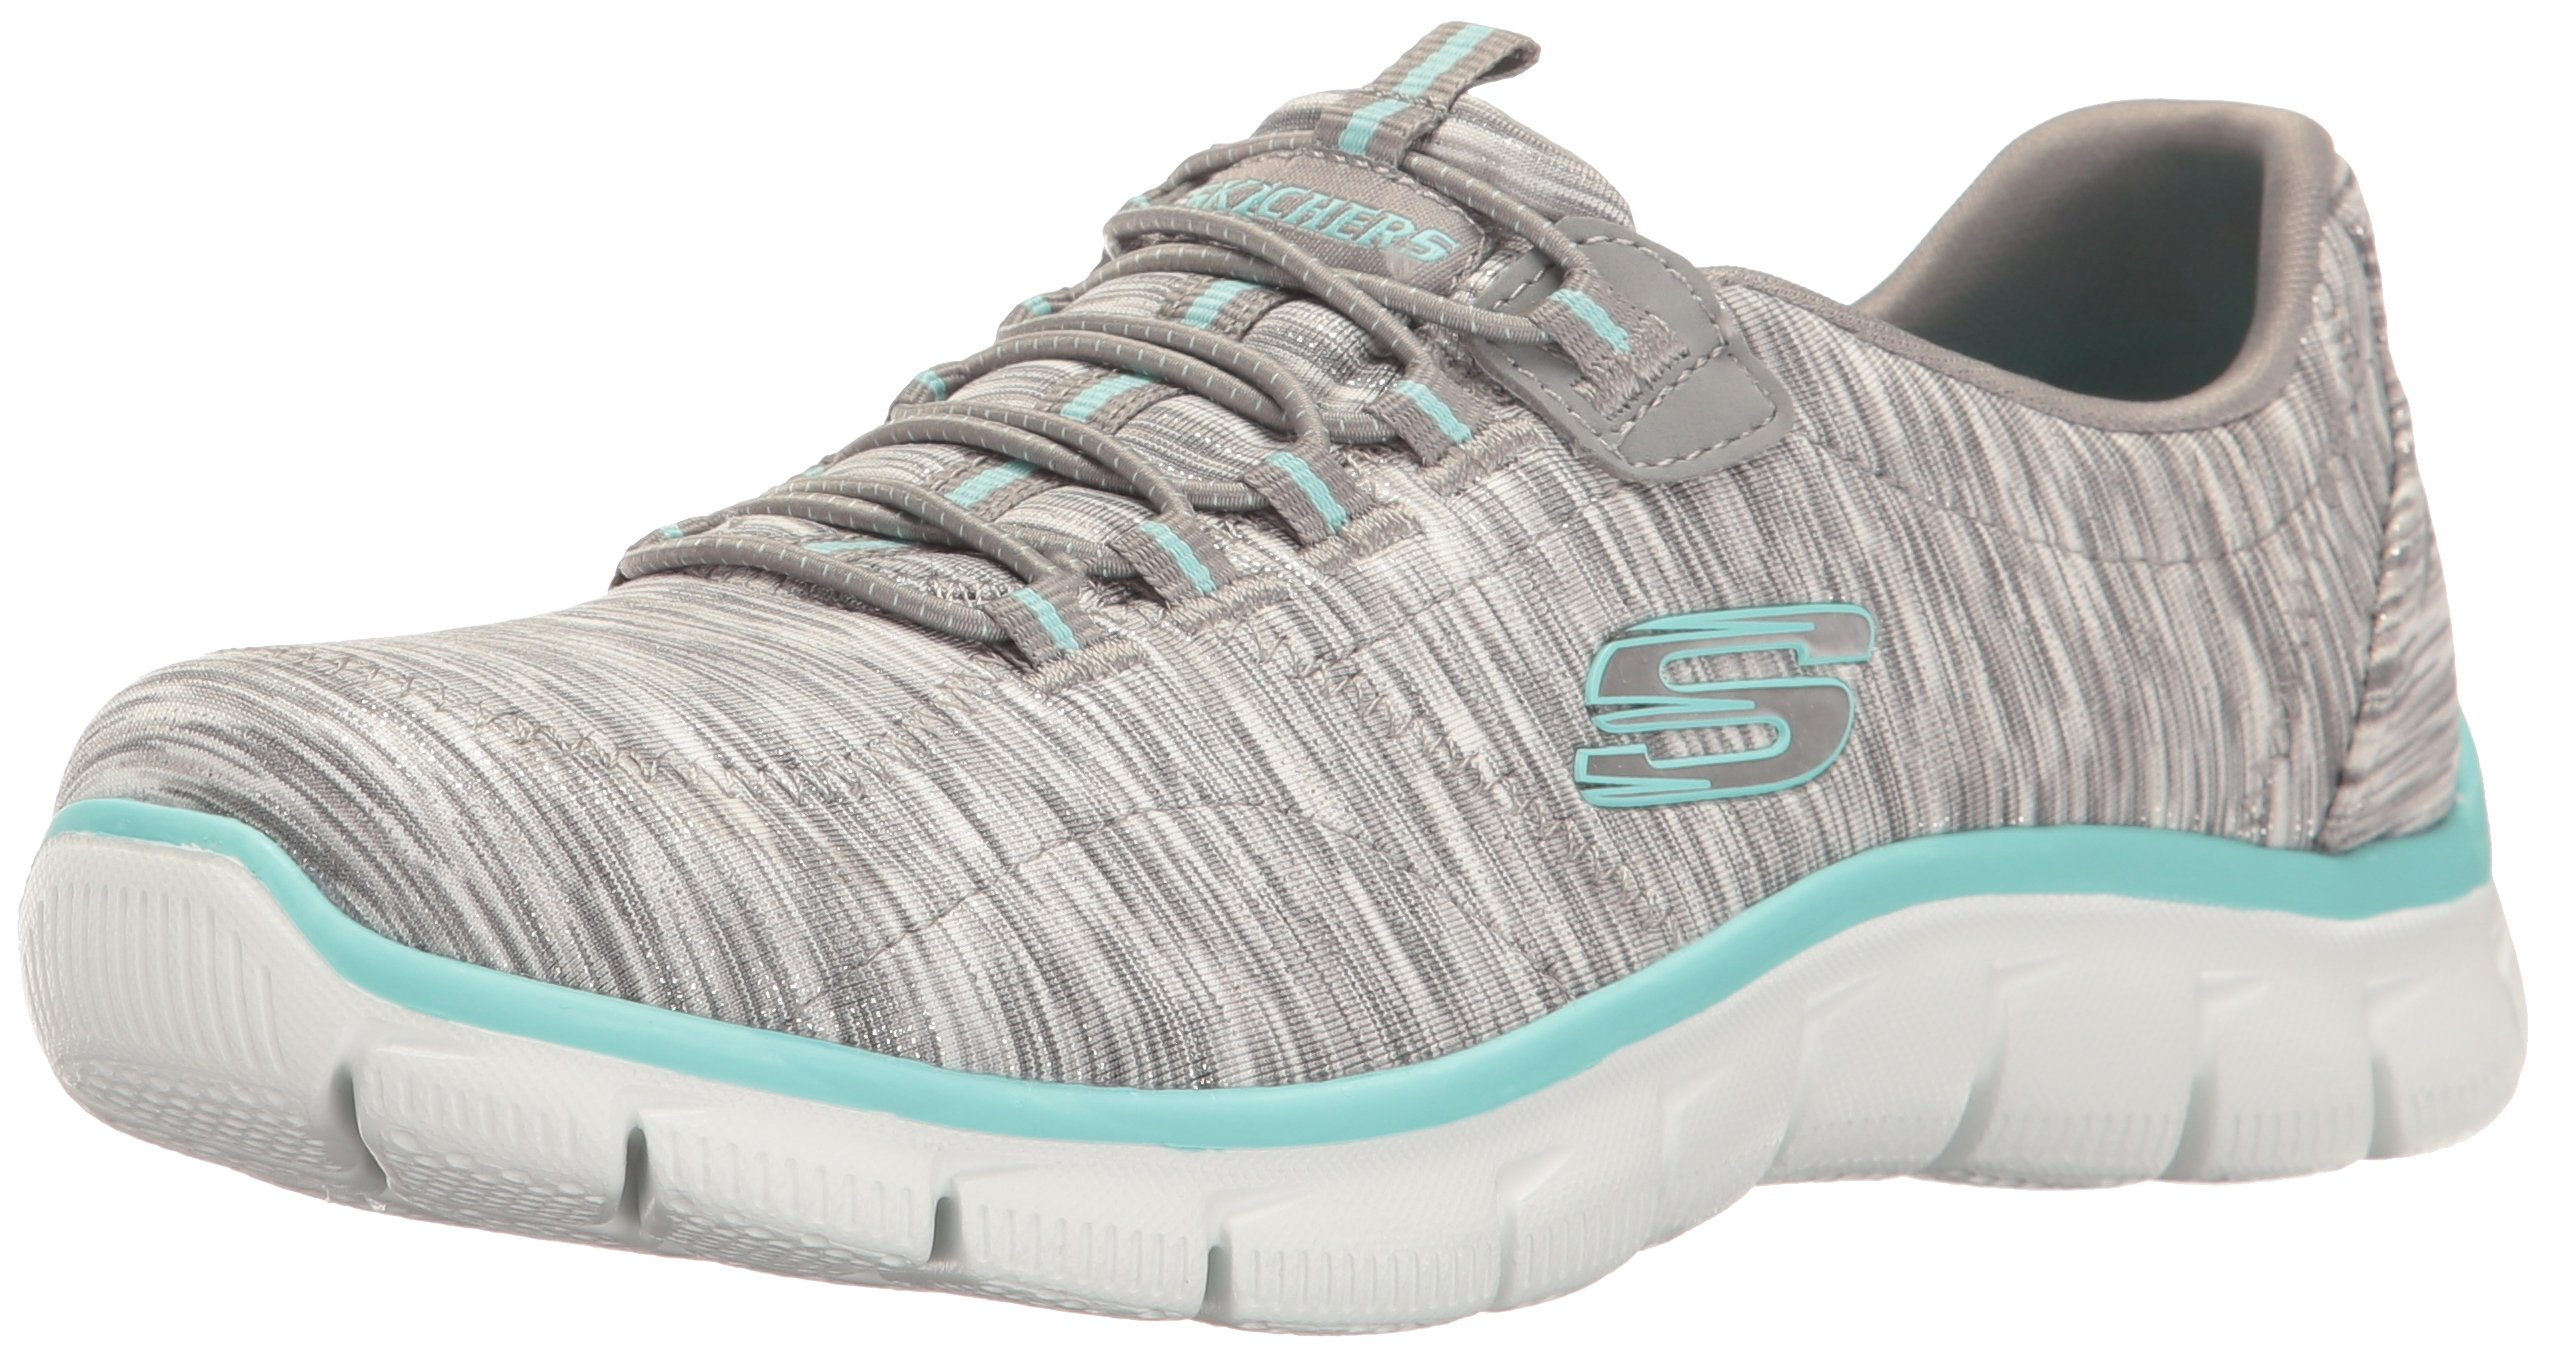 Skechers Women's Sport Empire - Rock Around Relaxed Fit Fashion Sneaker, Gray/Light Blue, 8 B(M) US